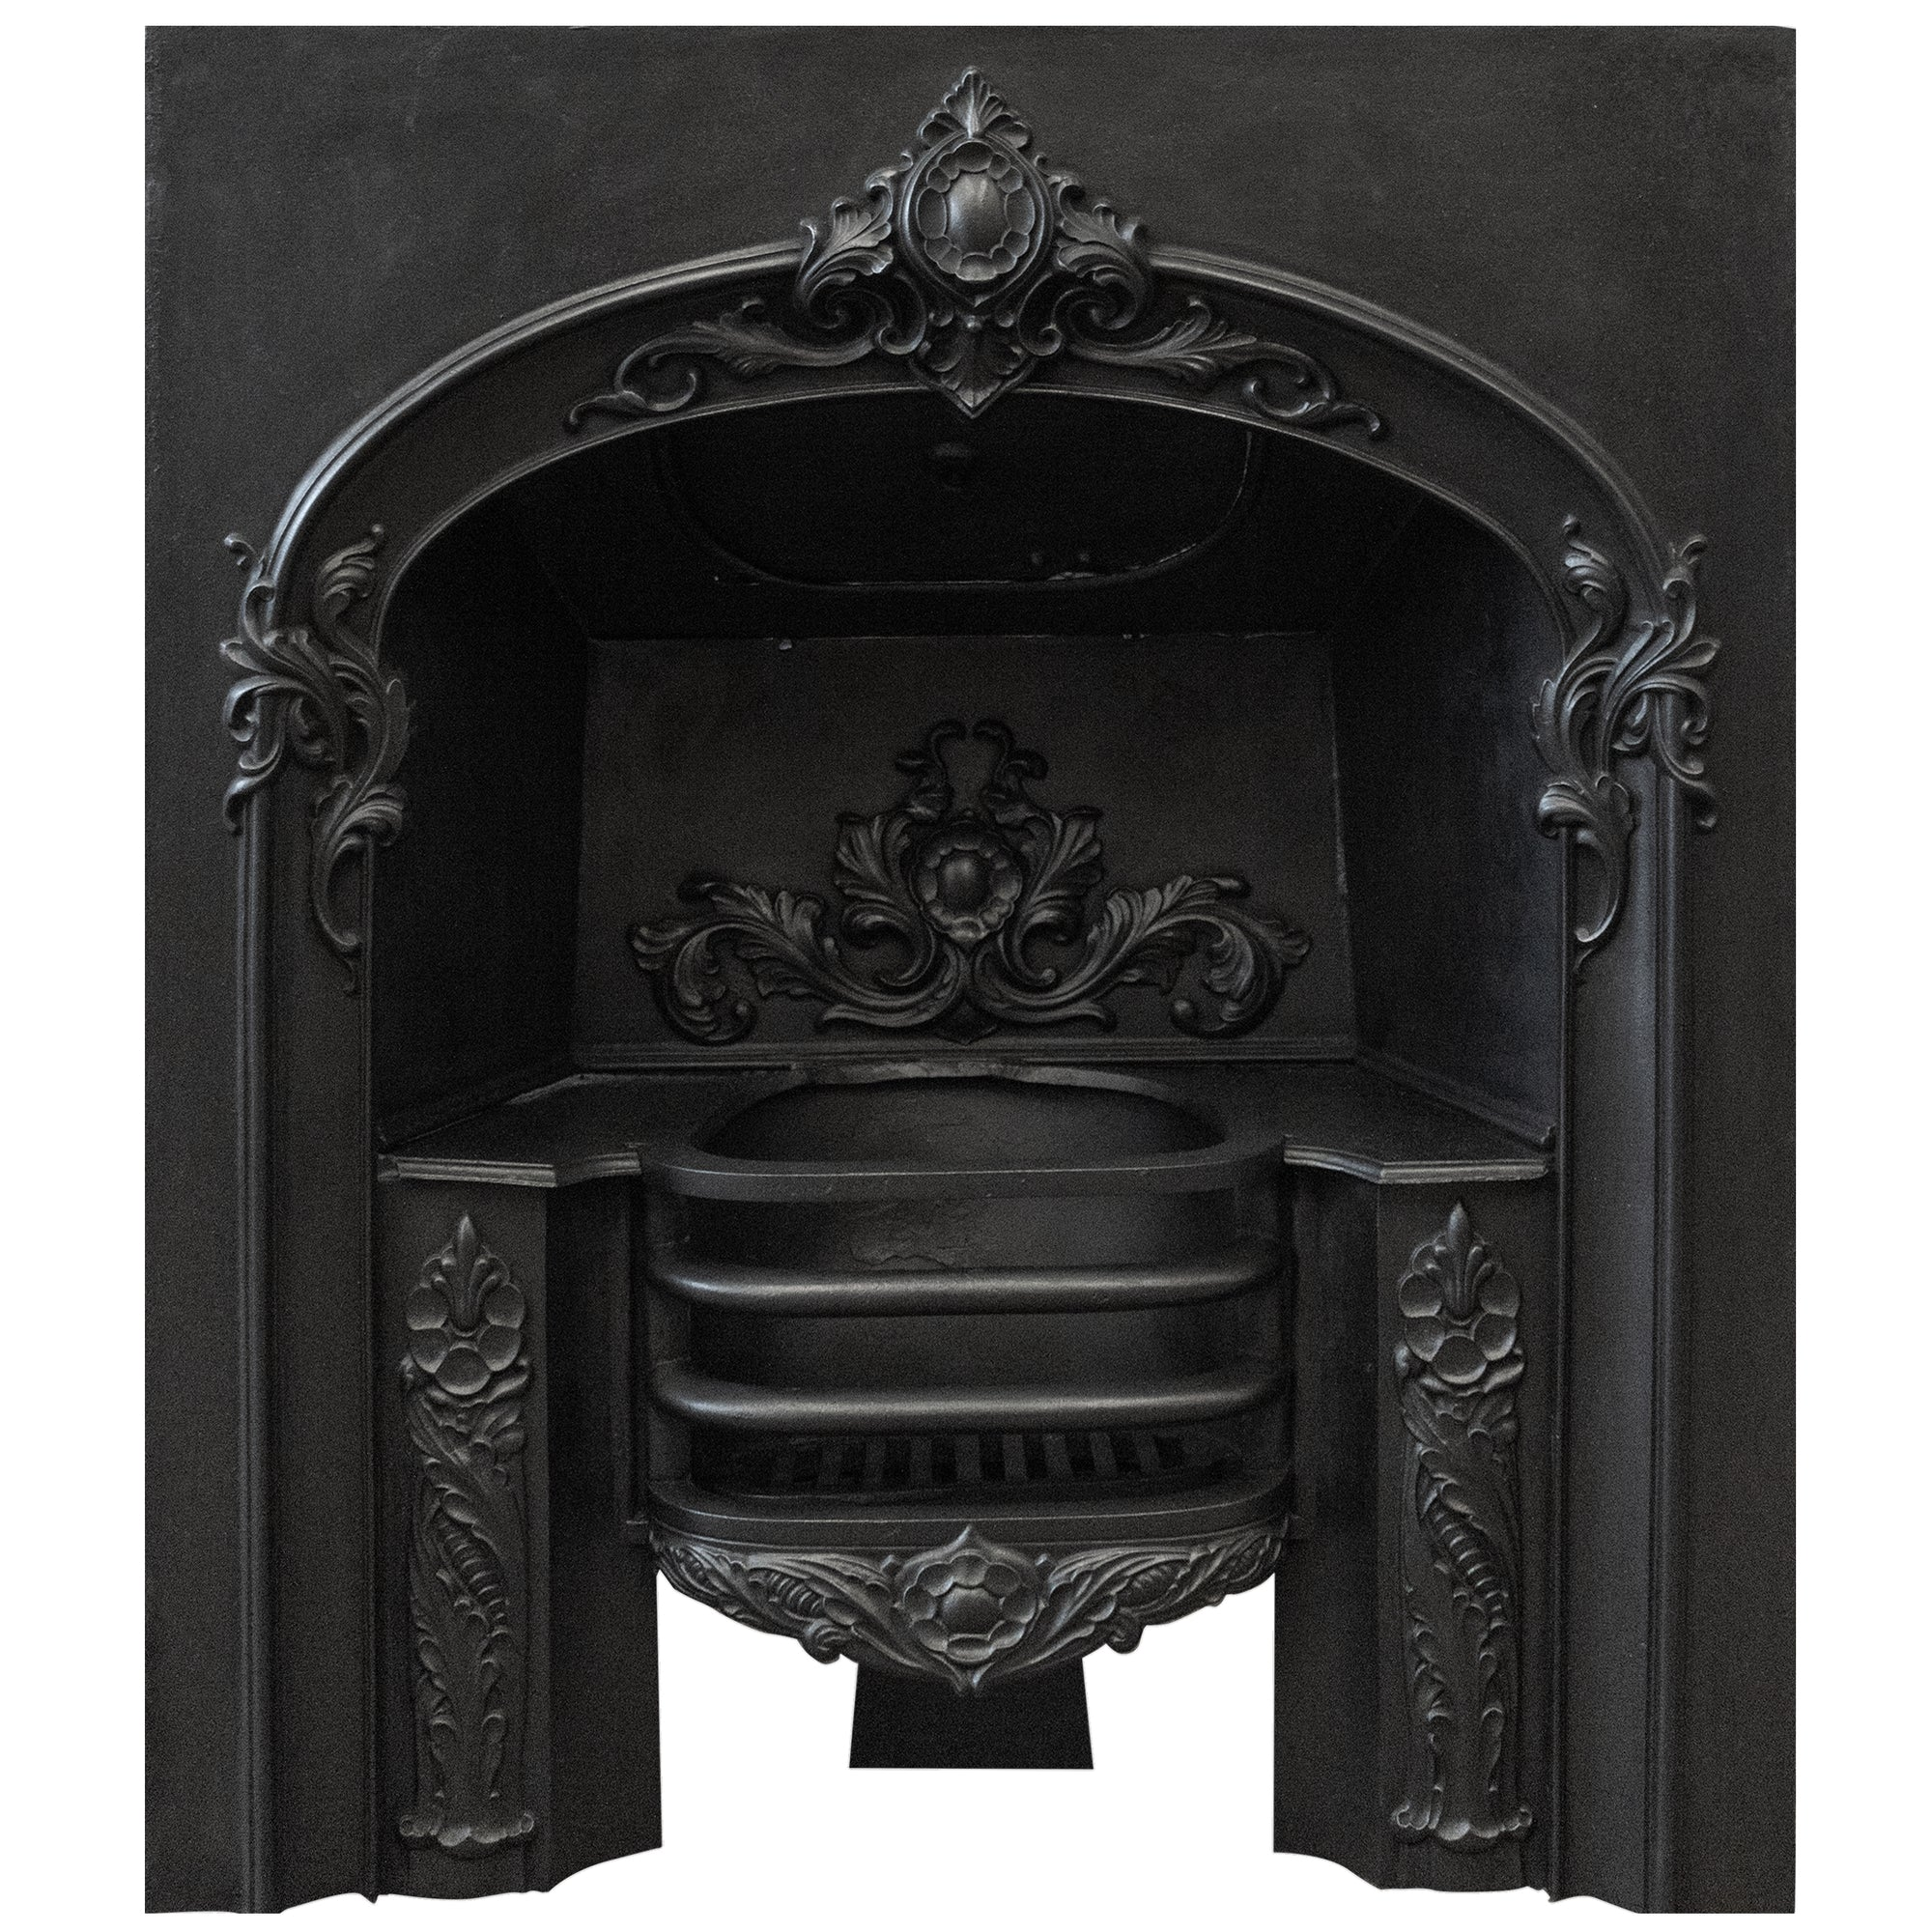 Antique Early Victorian Cast Iron Fireplace Insert - The Architectural Forum